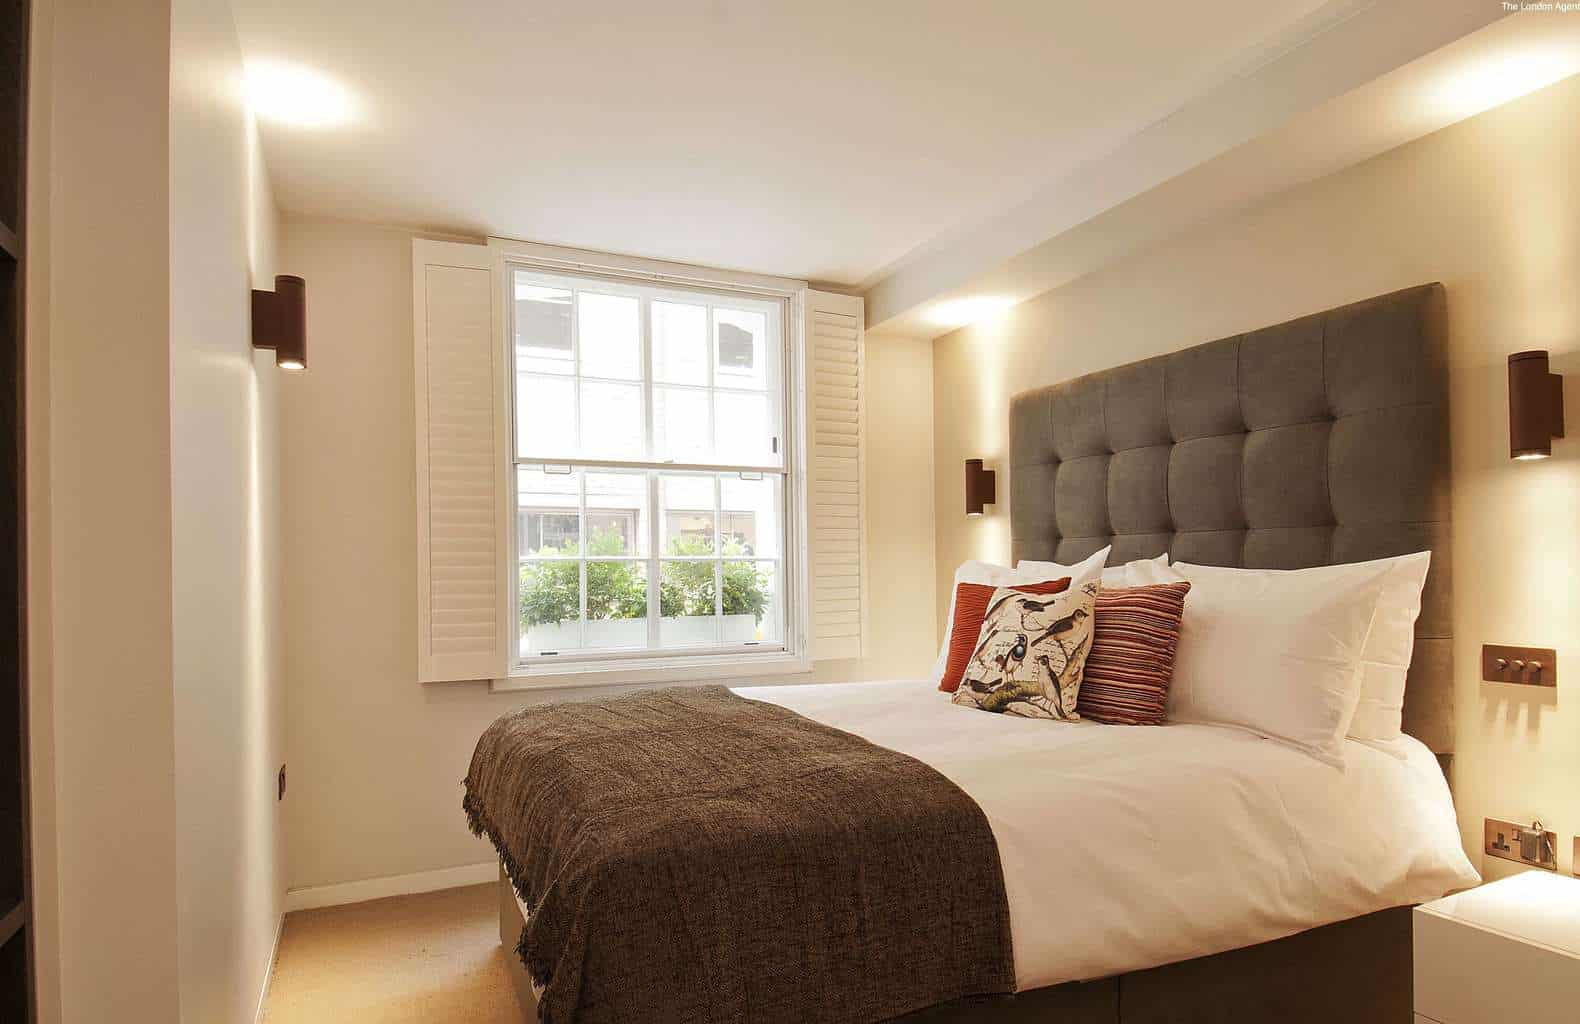 Looking for serviced apartments London?